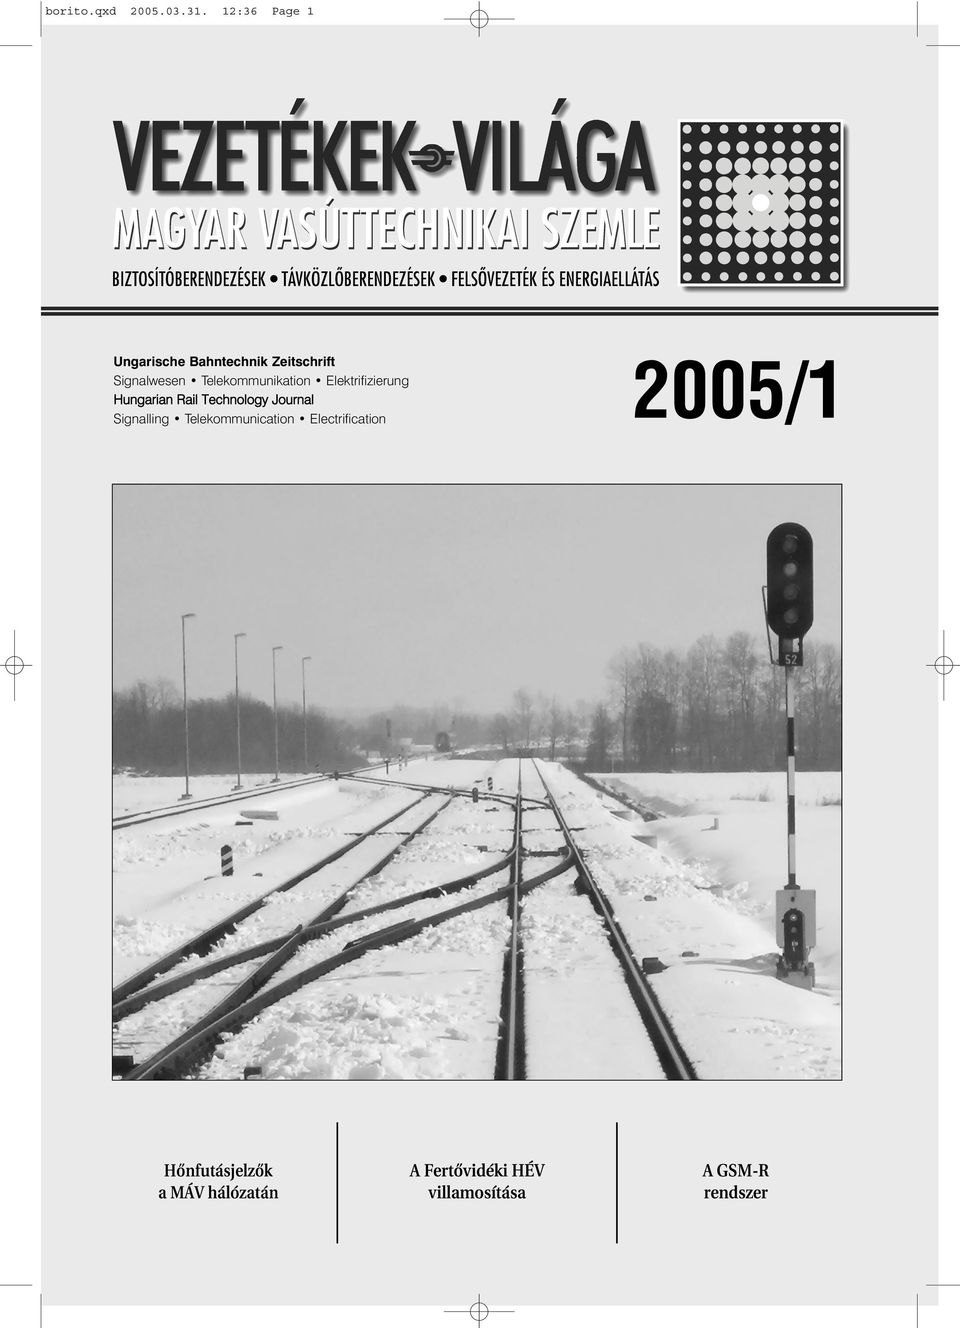 Telekommunikation Elektrifizierung Hungarian Rail Technology Journal